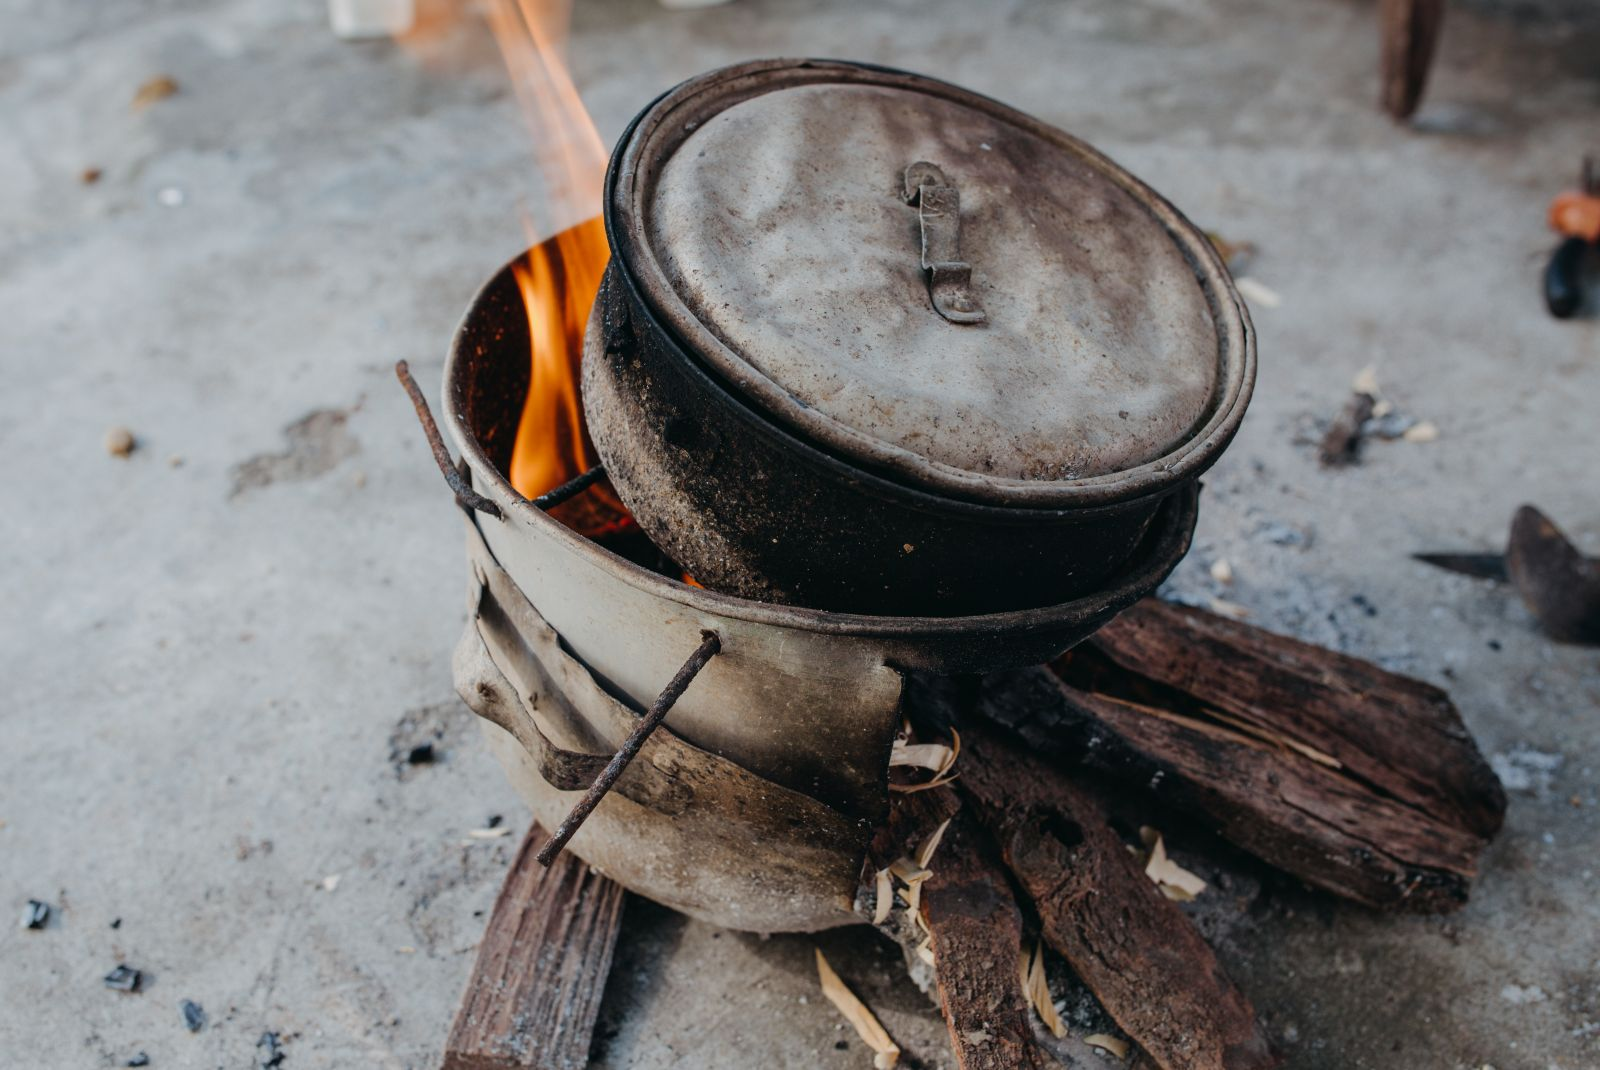 The indispensable material is lead. Mr. Dung buys pure lead, then he burns it in an aluminum pot until the lead melts.